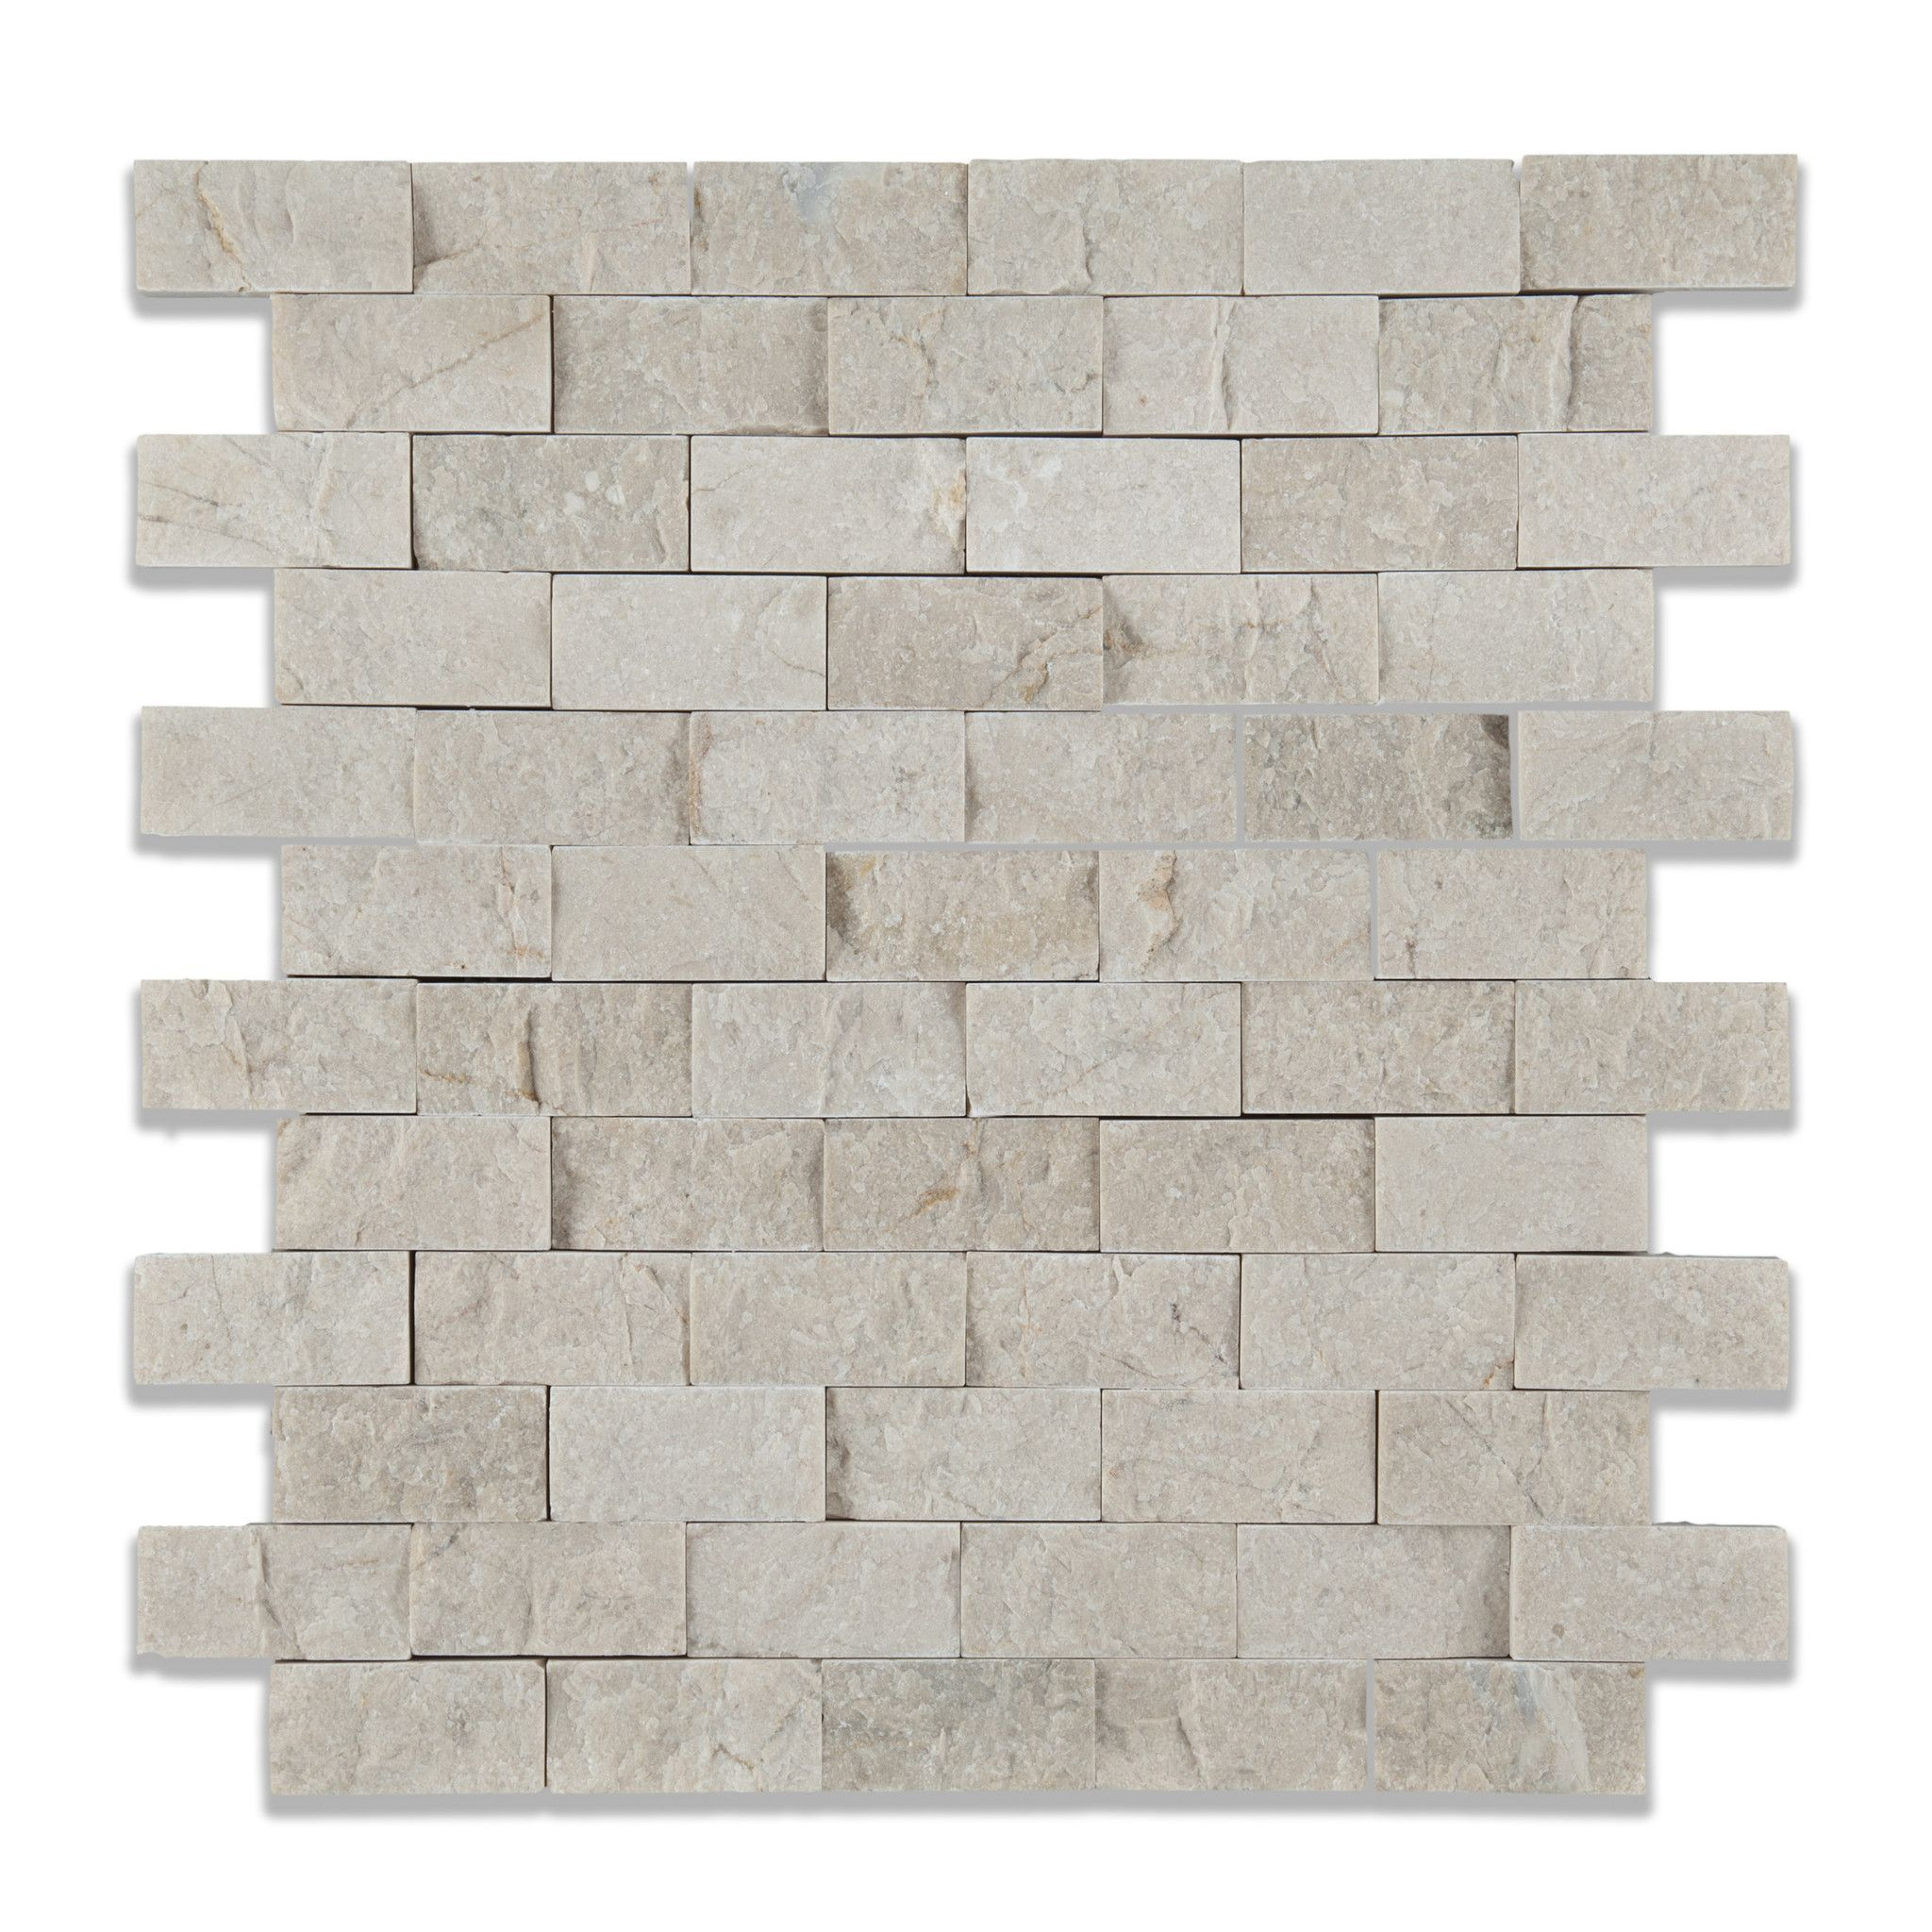 Daltile Natural Stone Collection Crema Marfil 12 In X 12 In Marble Floor And Wall Tile 10 Sq Ft Case M72212121l A Marble Look Tile Marble Floor Daltile